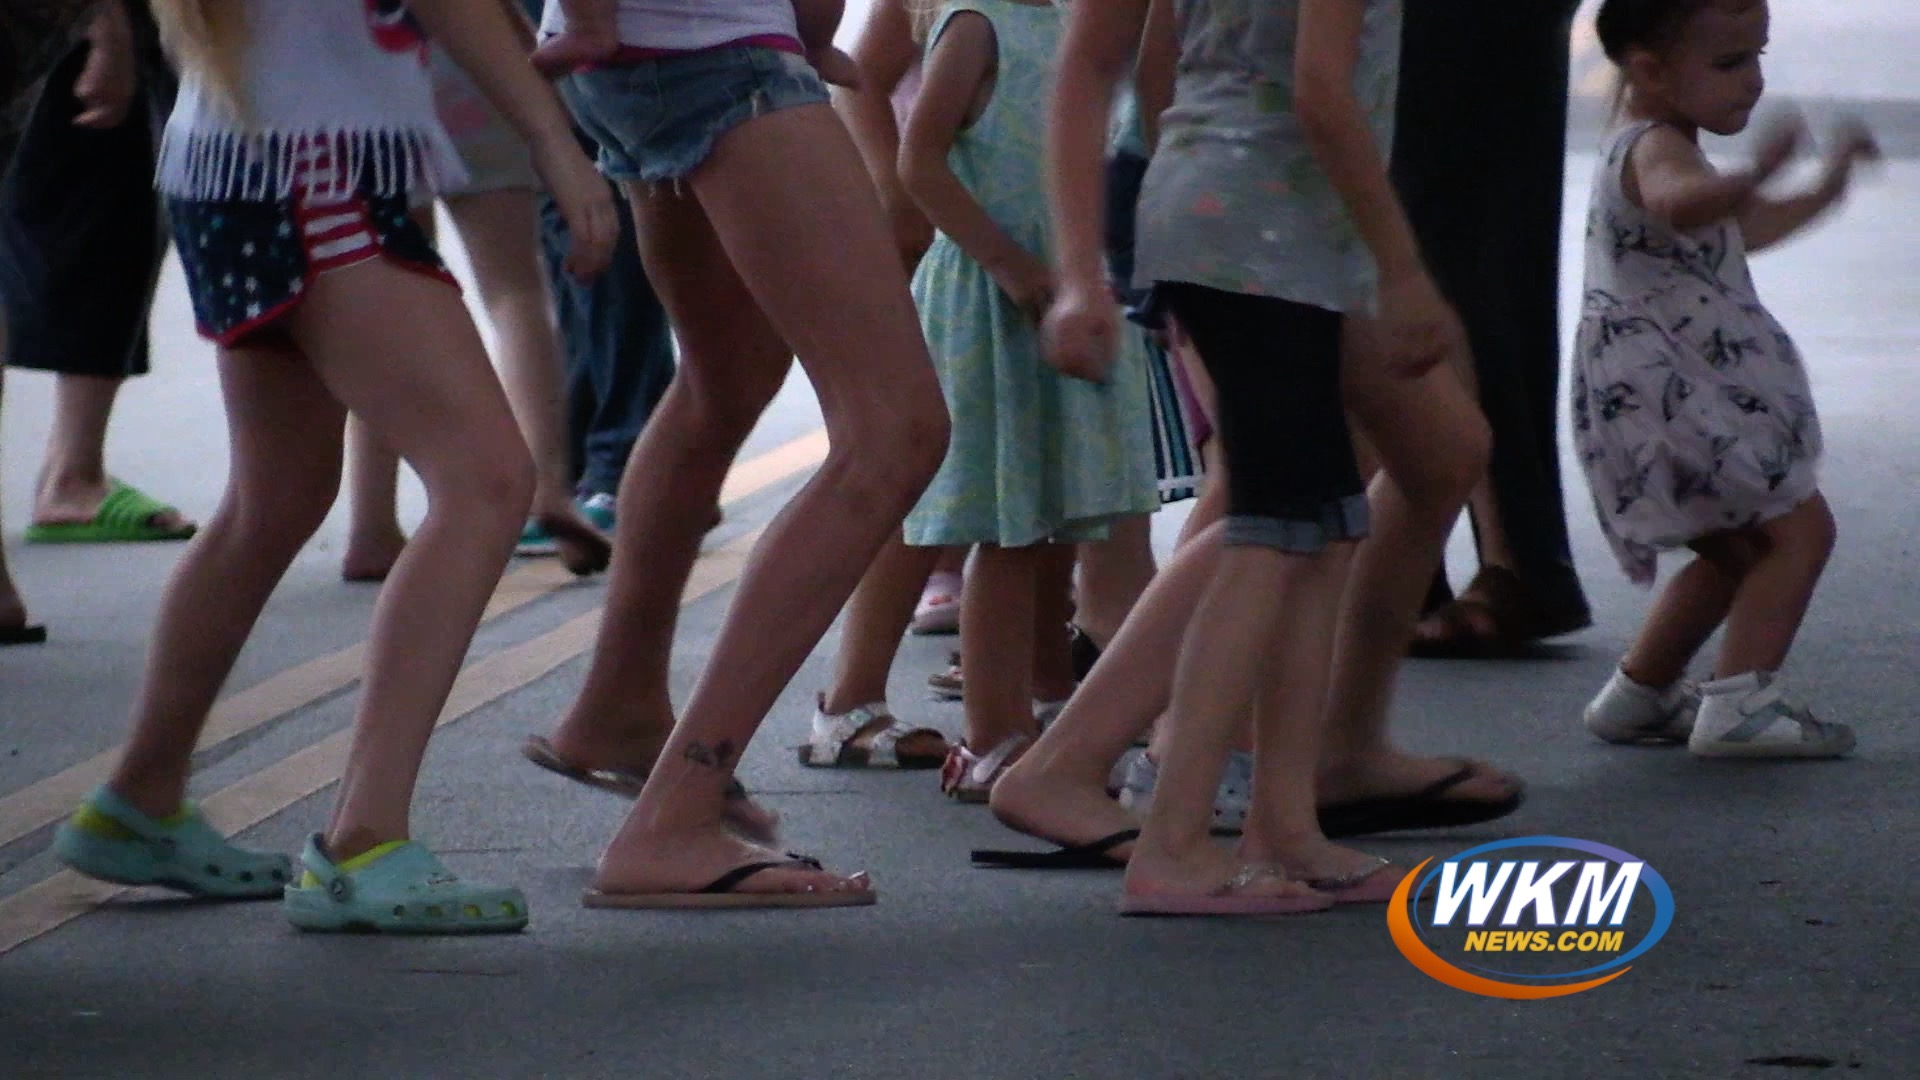 Regatta 2021: Movin' and Groovin' at WORX Street Dance Party